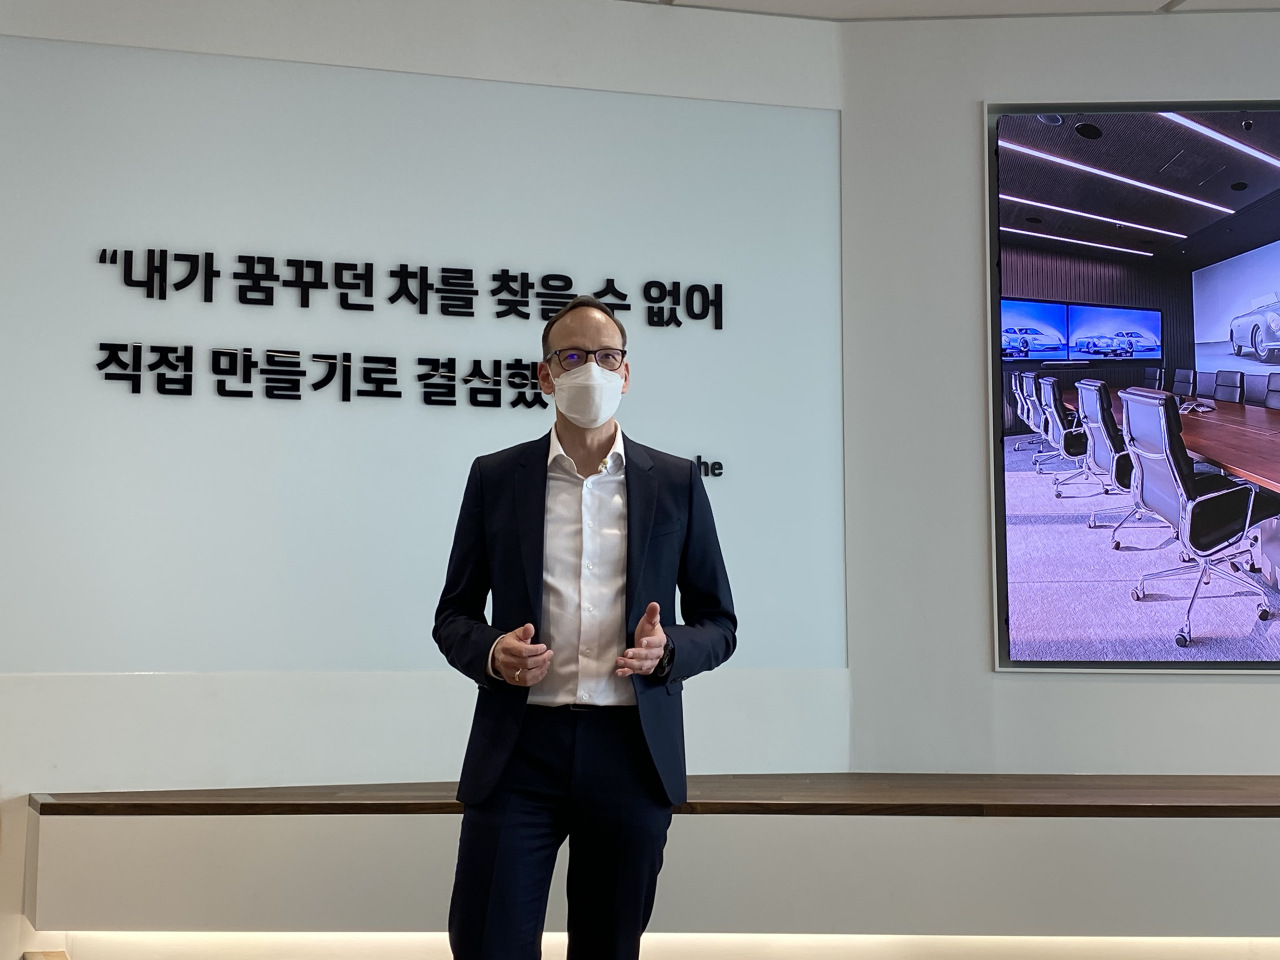 Porsche Korea CEO Holger Gerrmann speaks during a media conference at the new company office in Gangnam, Seoul on Thursday. (Jo He-rim/The Korea Herald)